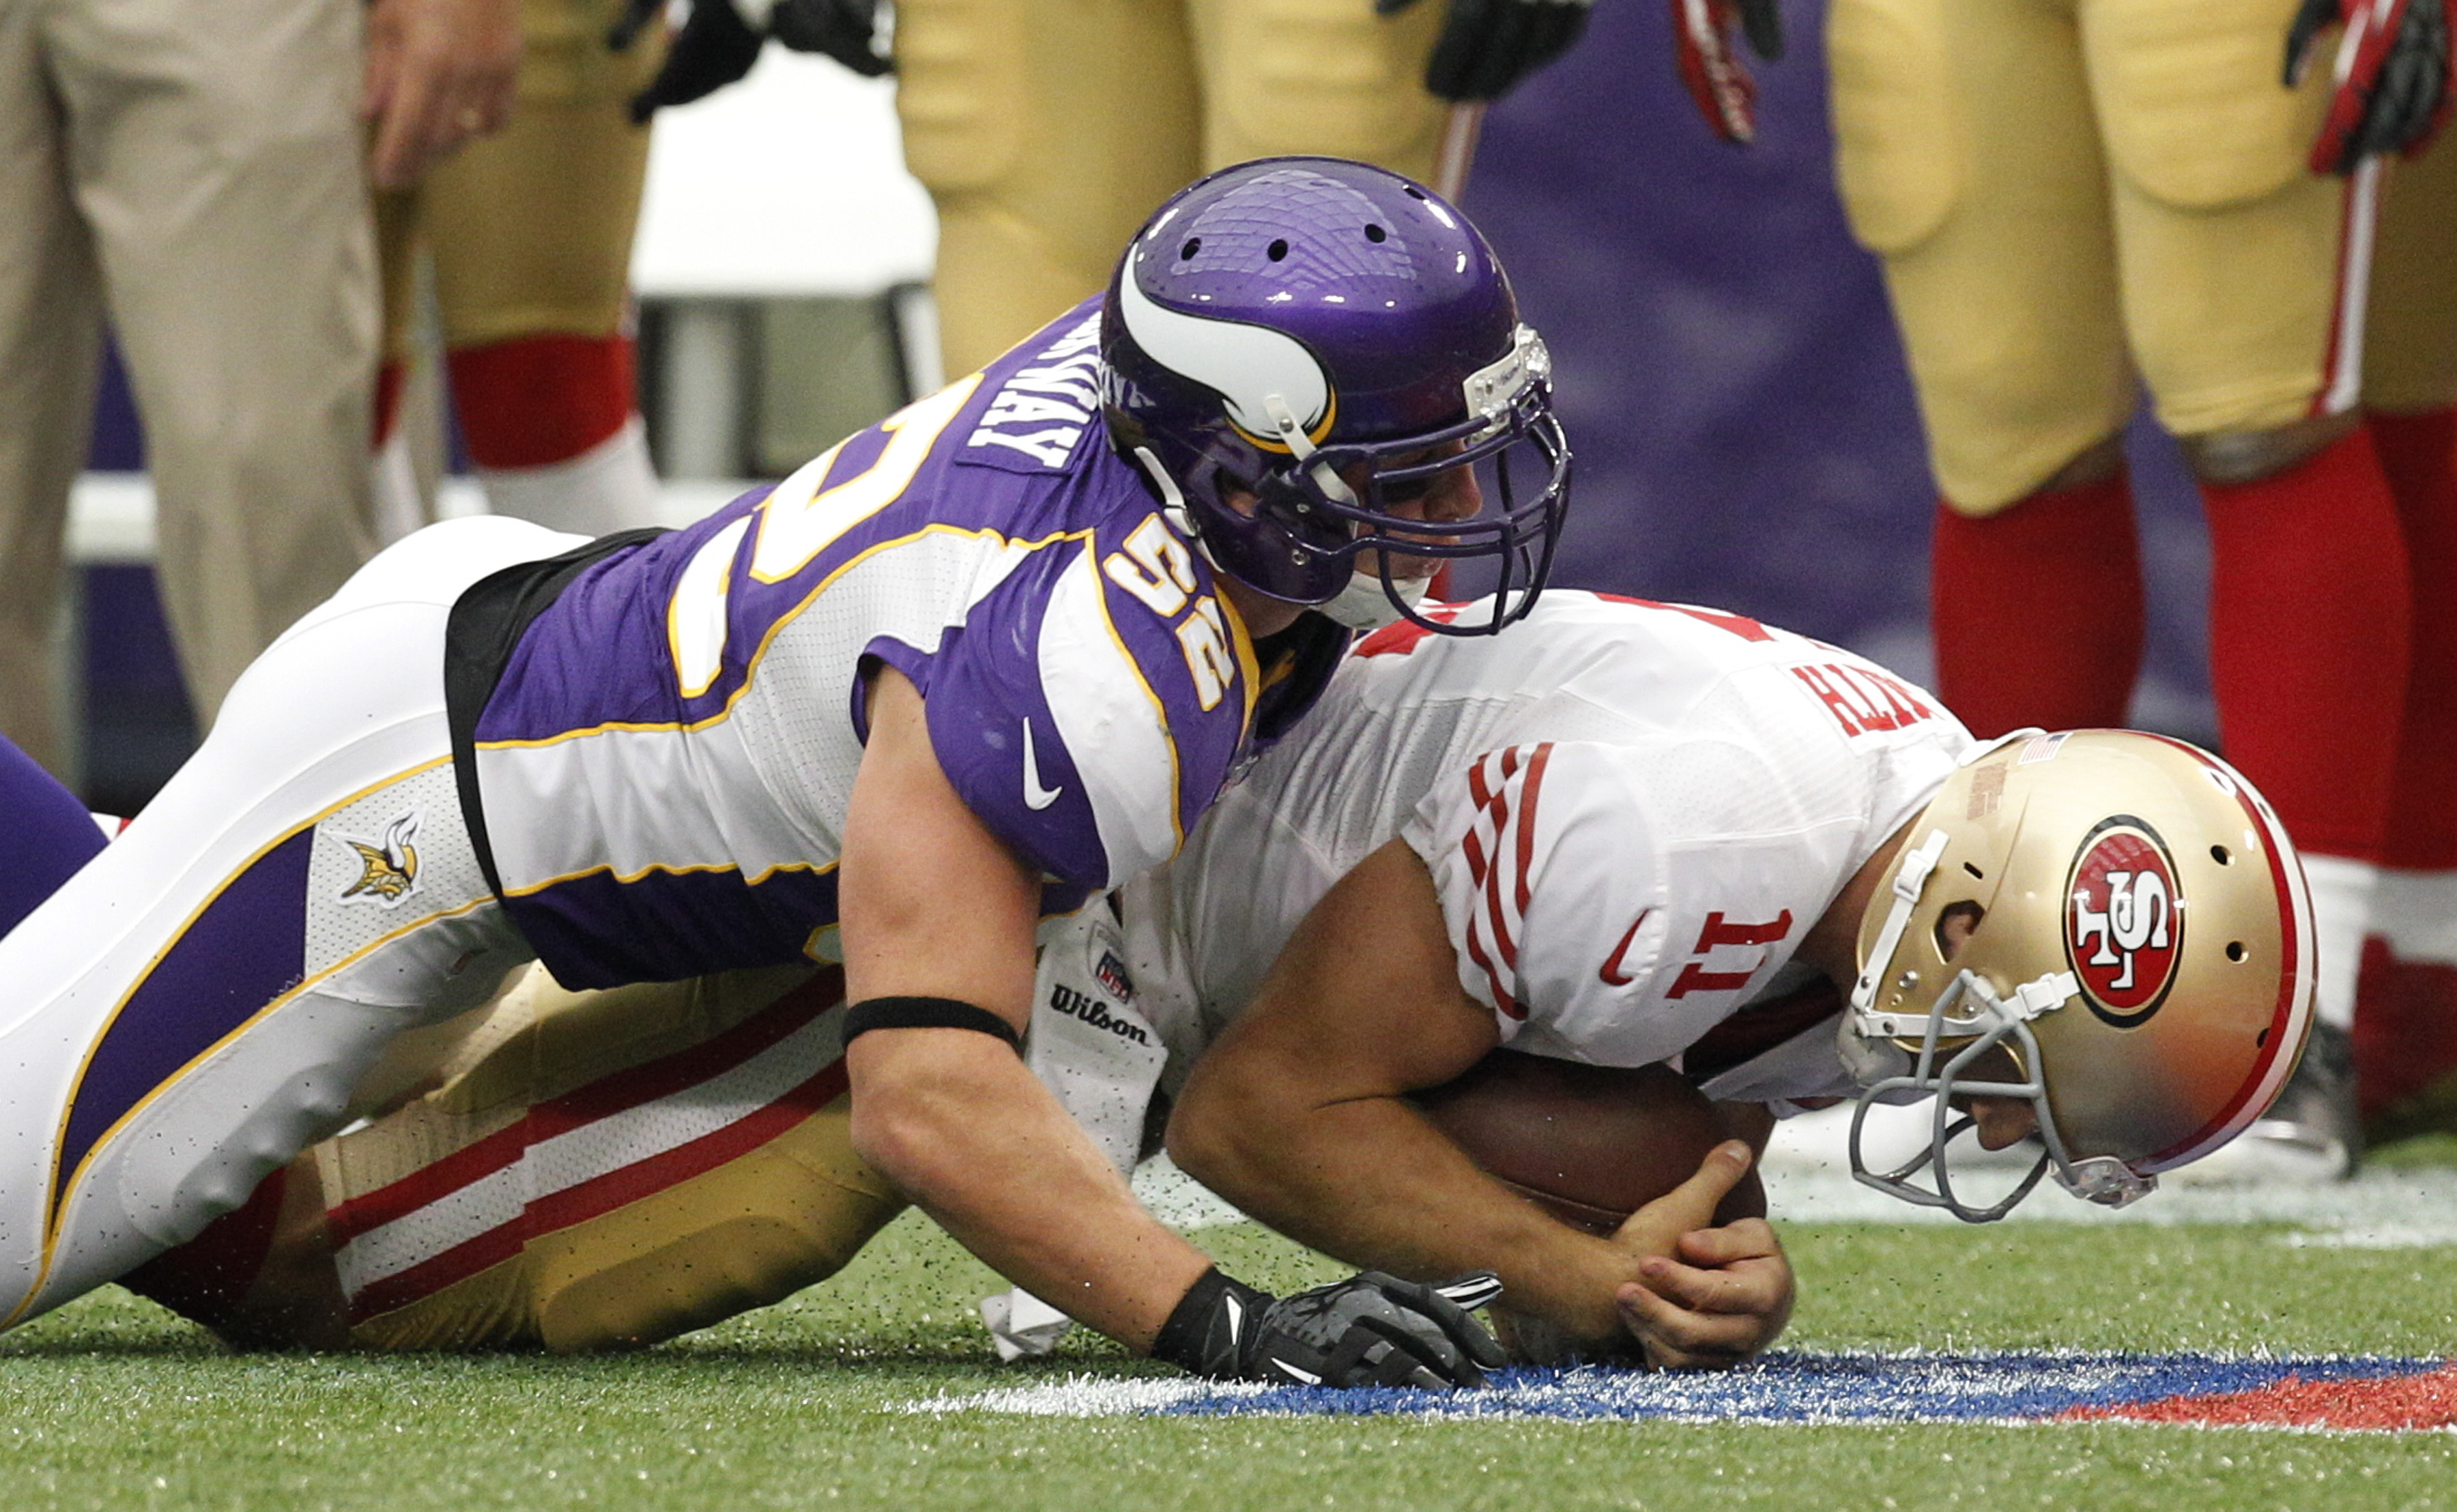 Click here to read Christian Ponder Played Quarterback Despite The 49ers Best Efforts, In One GIF